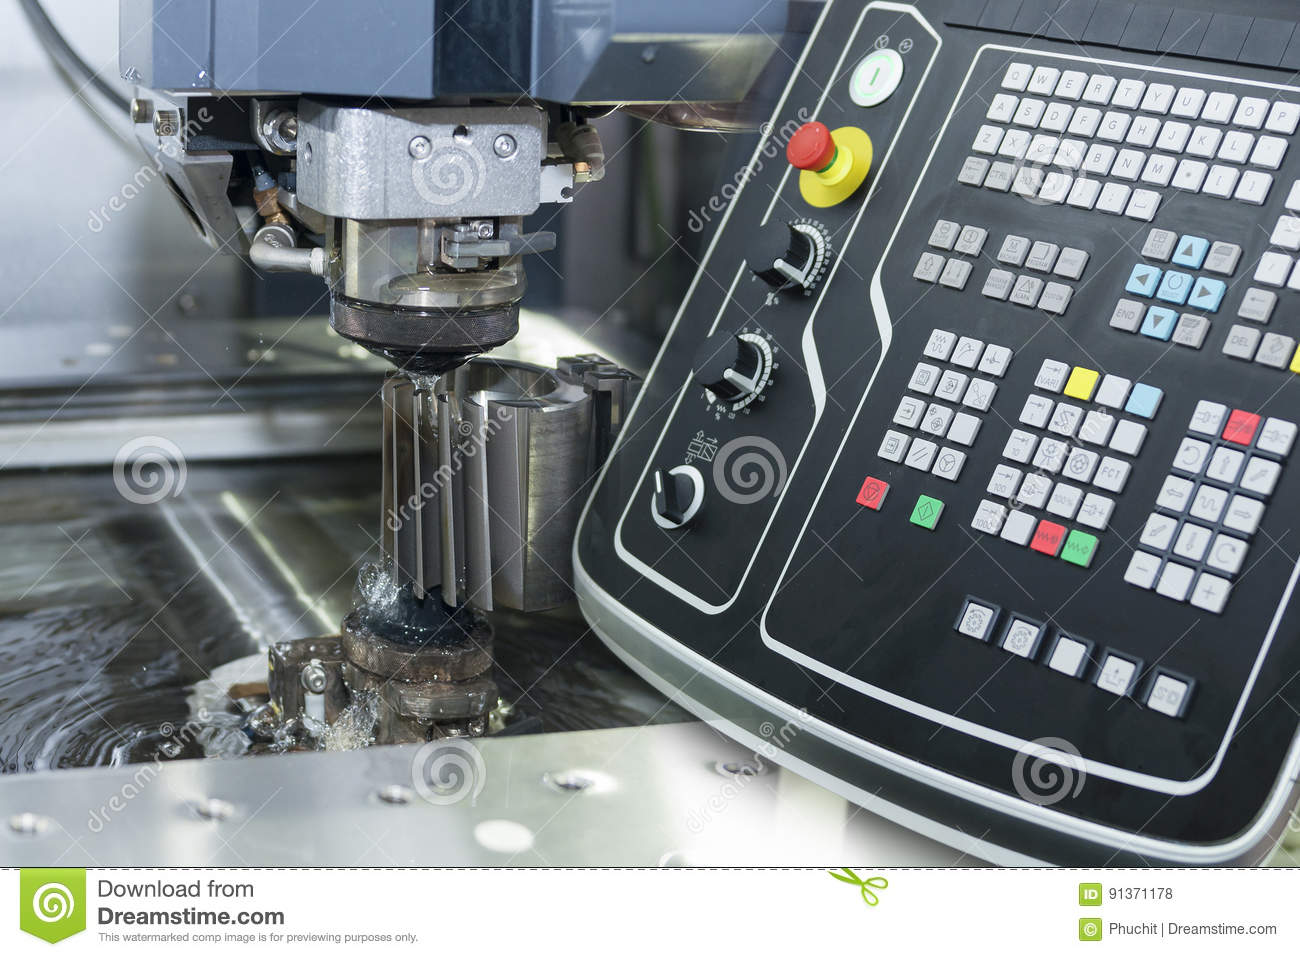 Abstract Scene Of Close-up Of The Wire - EDM CNC Machine Stock Photo ...